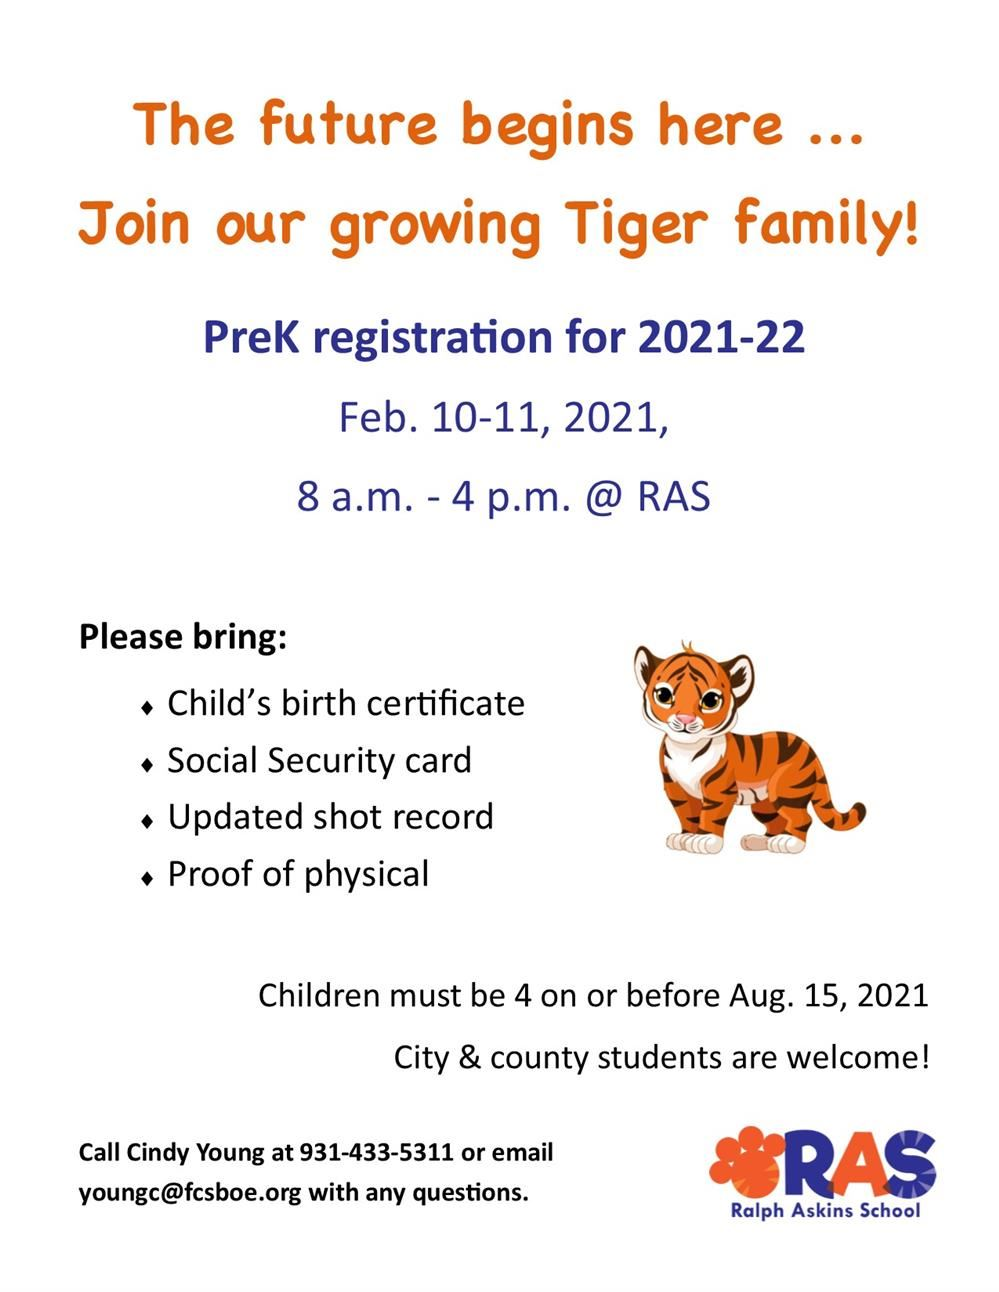 flyer about pre-k registration and dates